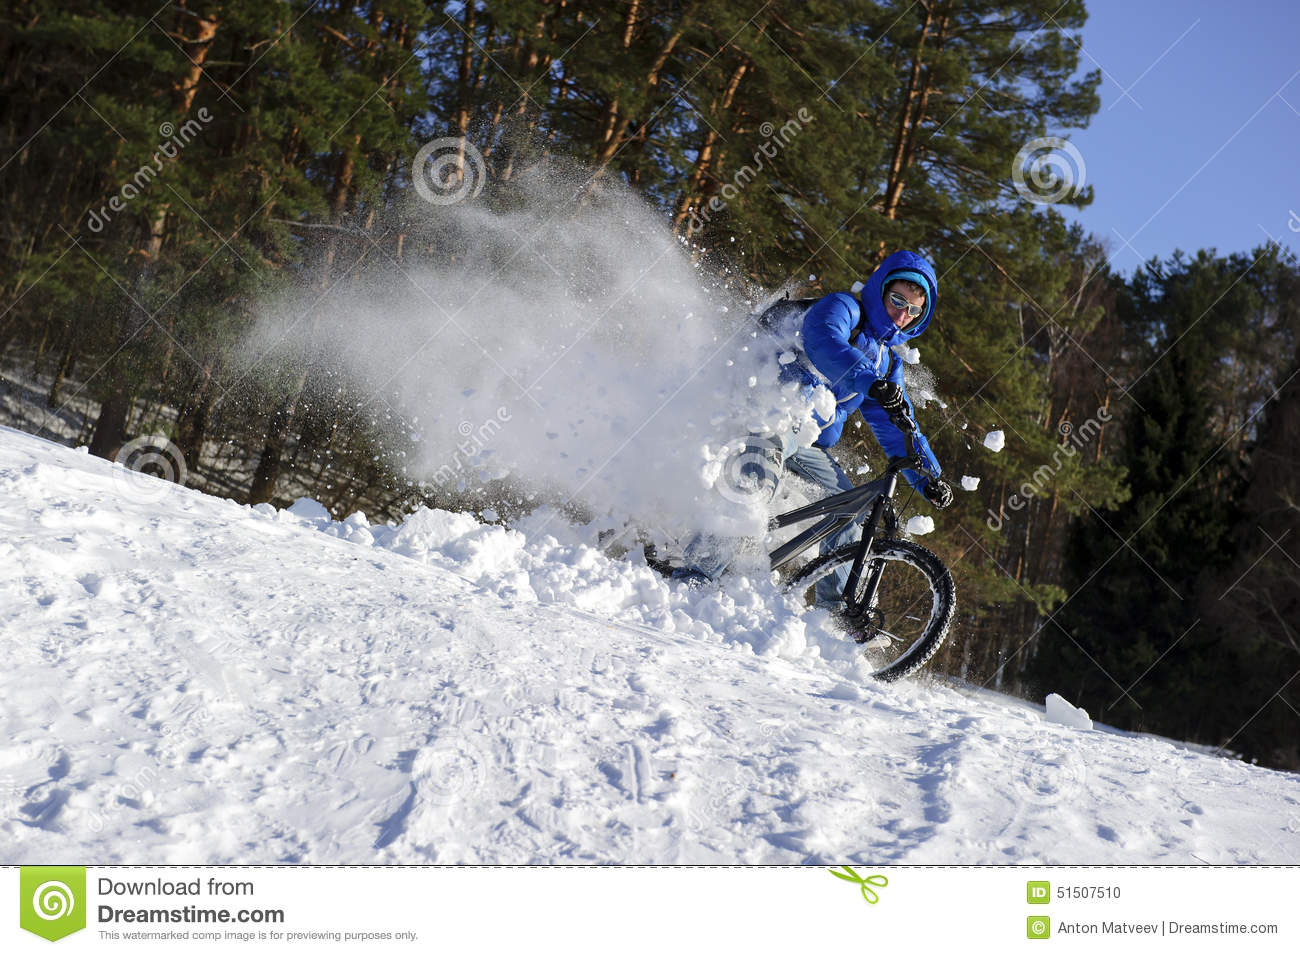 mountainbike snow winter extreme-#4